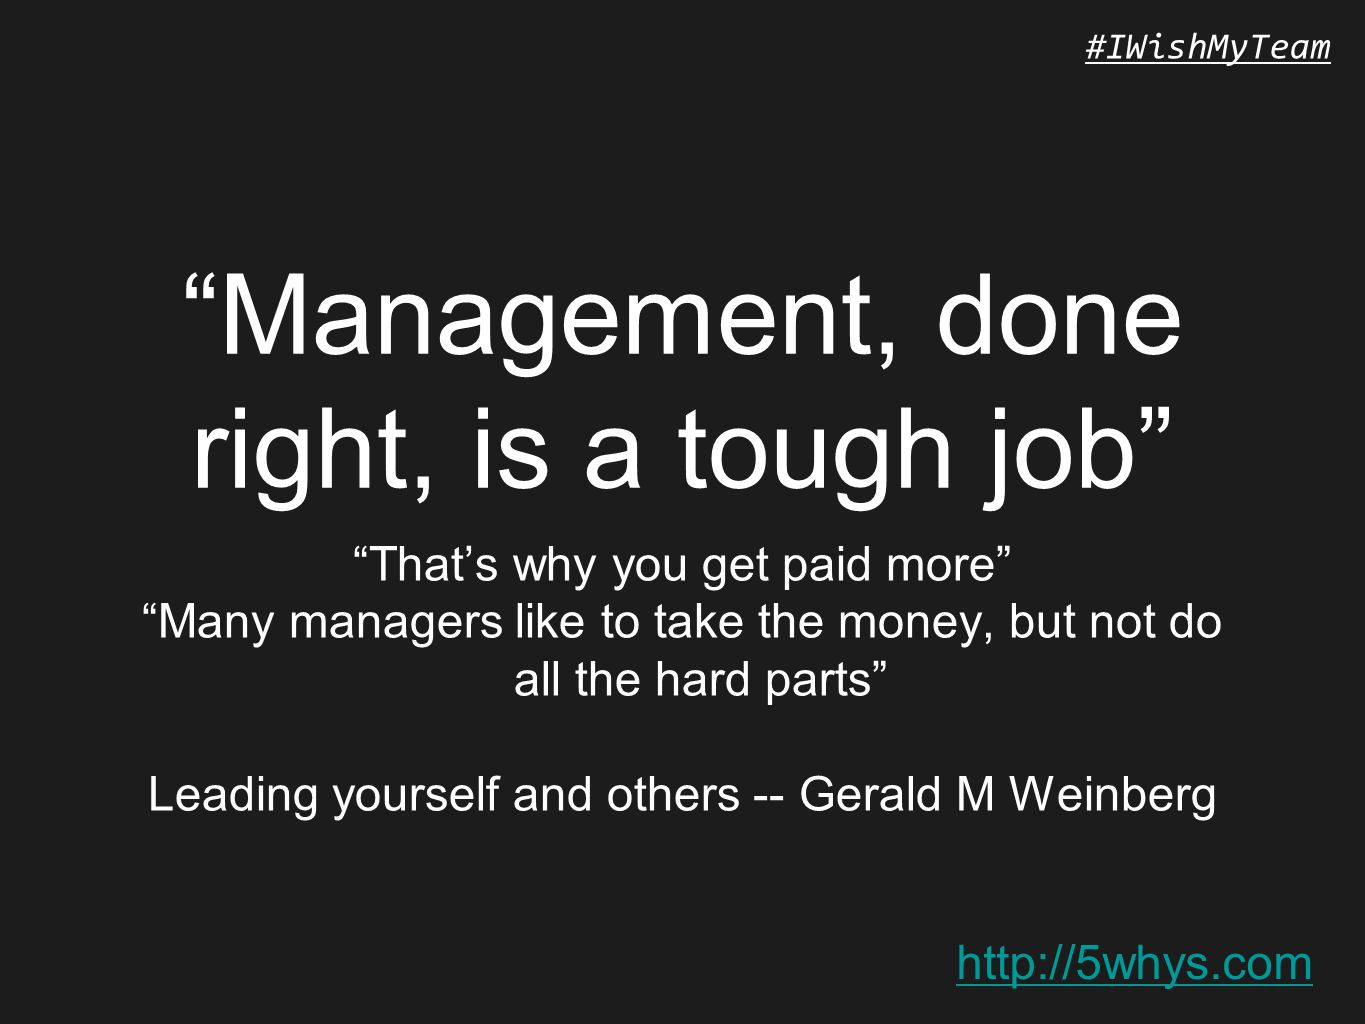 http://5whys.com #IWishMyTeam Management, done right, is a tough job That's why you get paid more Many managers like to take the money, but not do all the hard parts Leading yourself and others -- Gerald M Weinberg